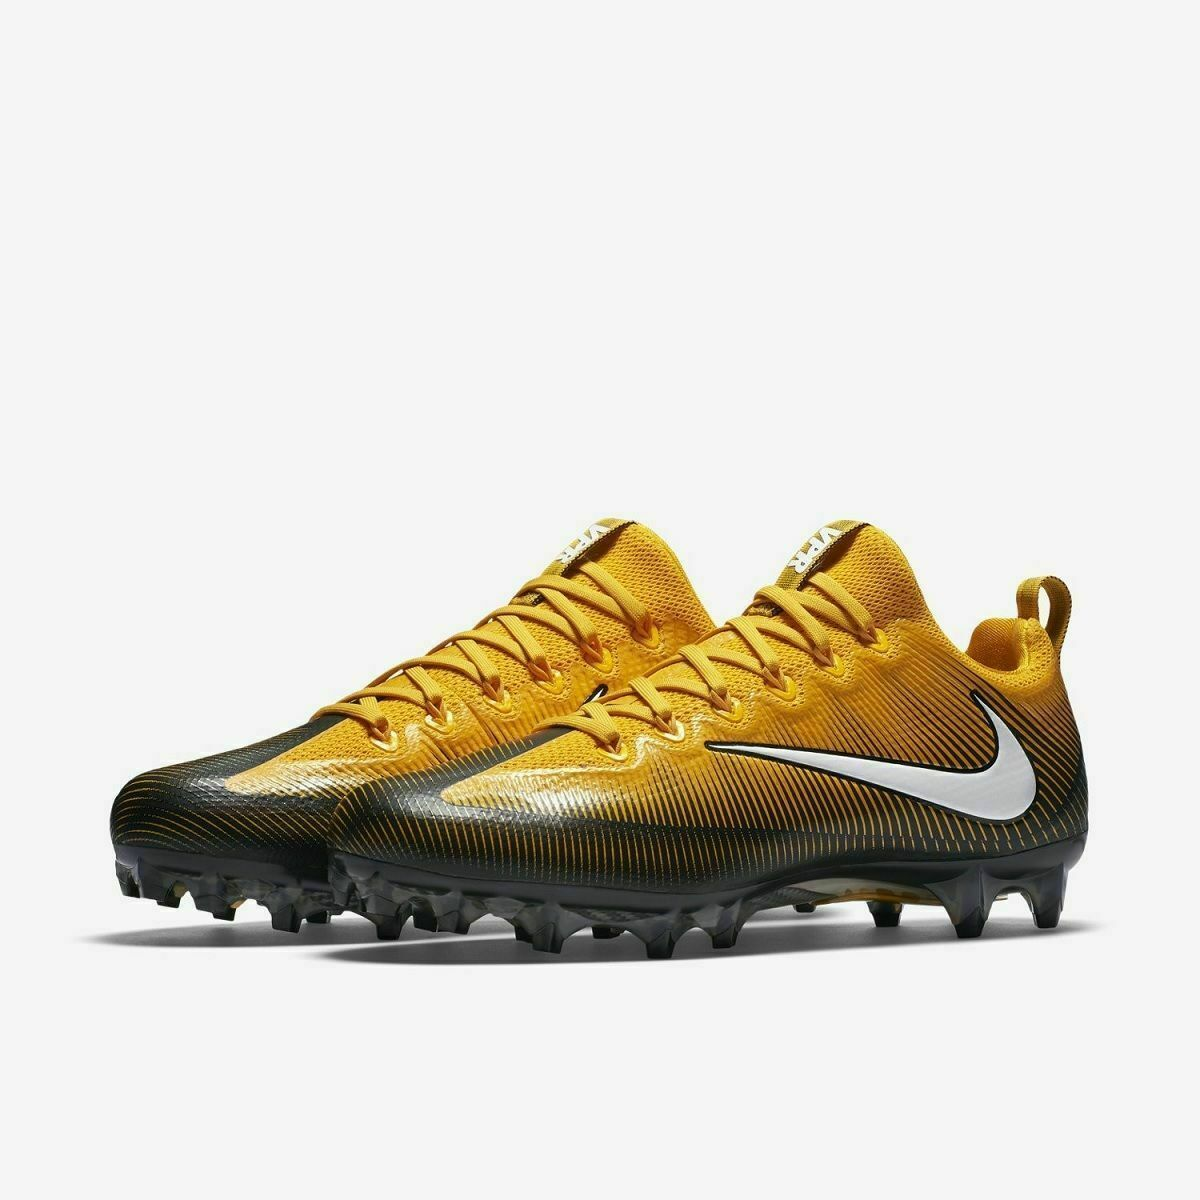 Primary image for Nike Vapor Untouchable Pro VPR Football Cleats 839924-025 Yellow/Black Size 14